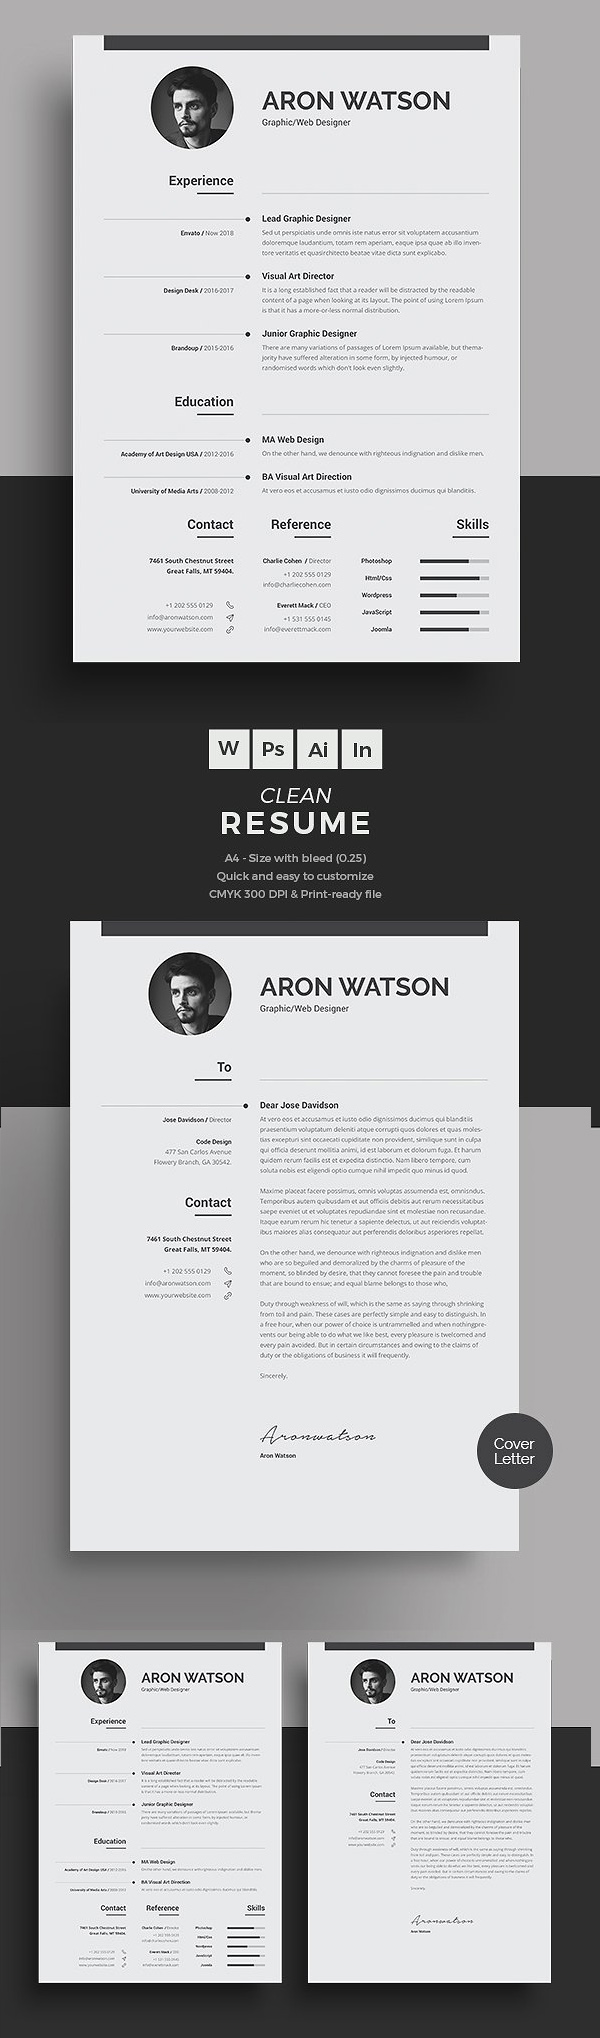 50 Best Resume Templates For 2018 - 20